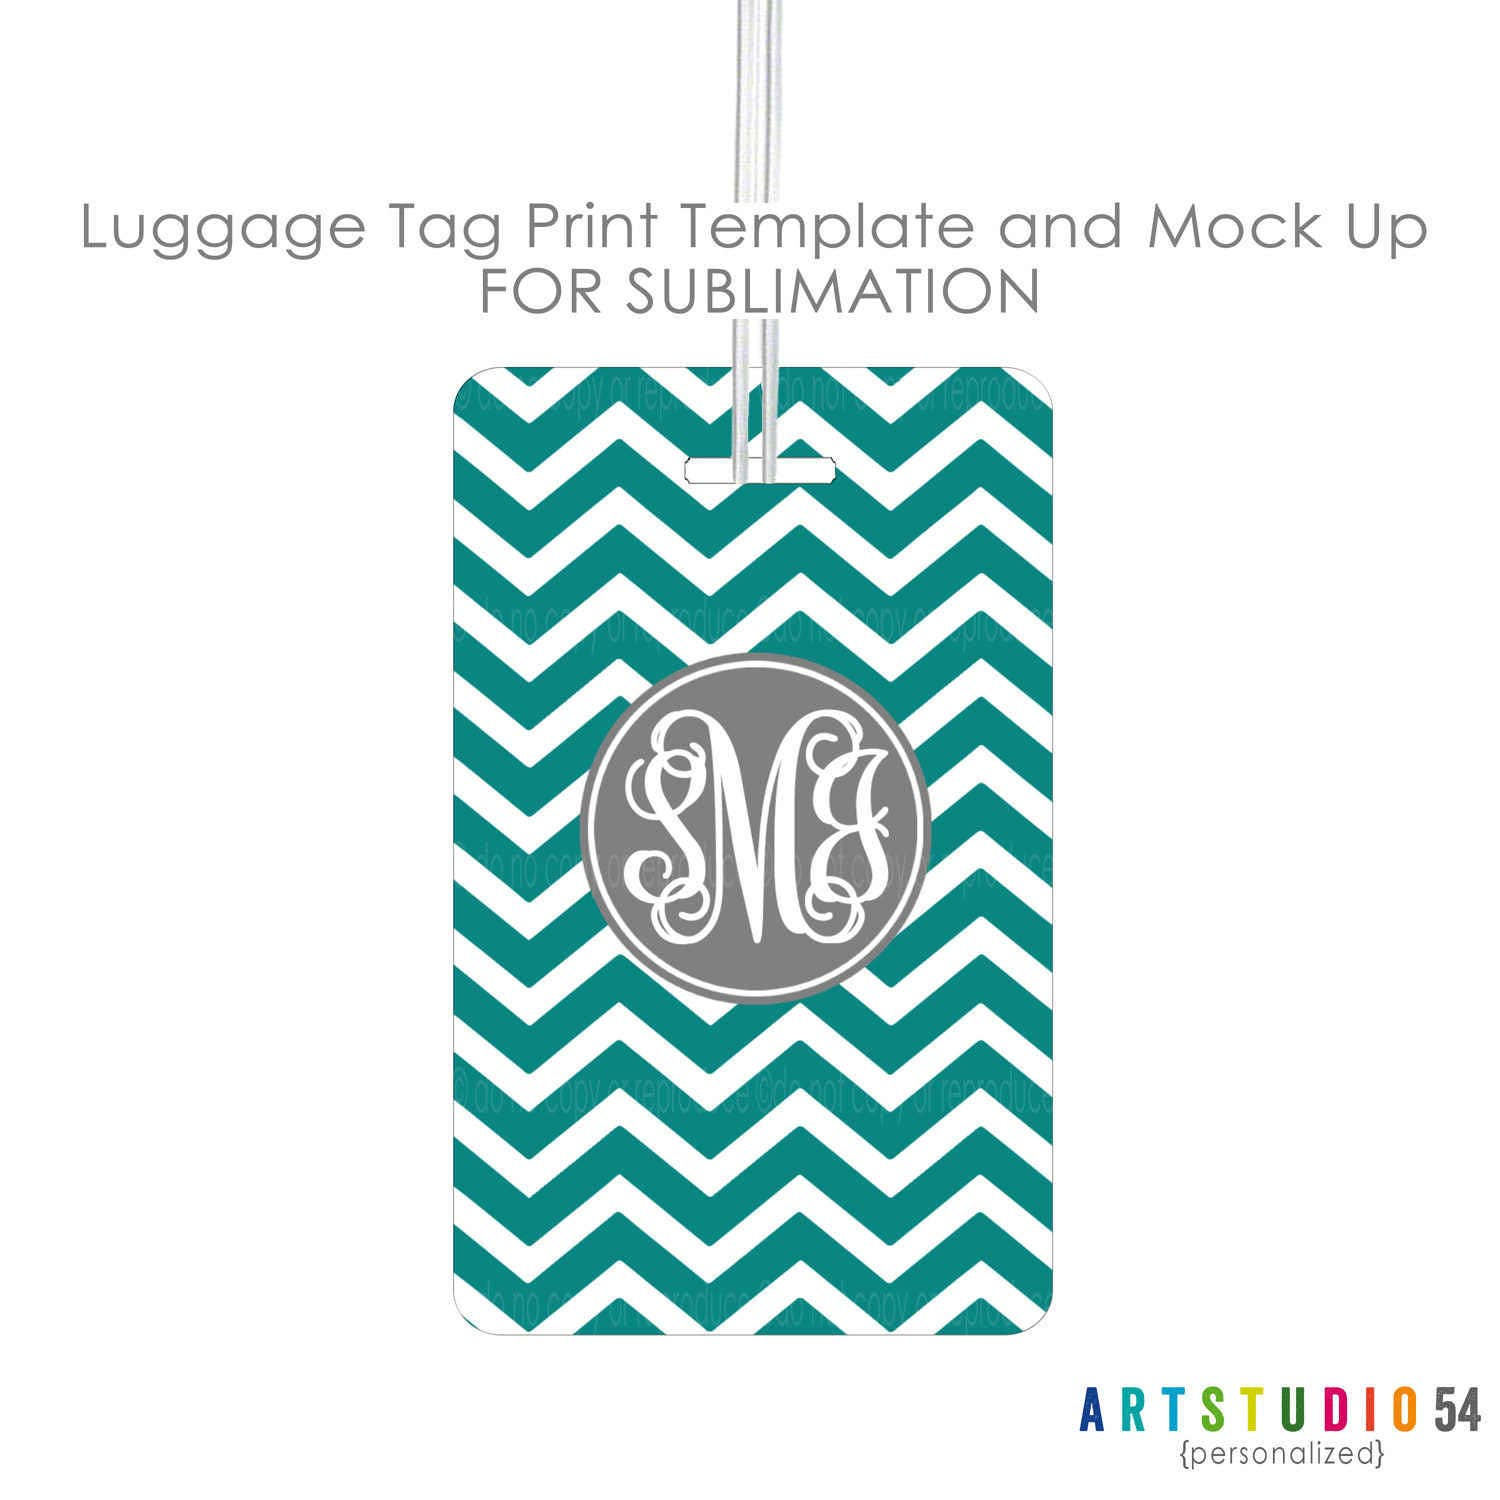 Sublimation Luggage Tag Print And Mock Up Template Digital Etsy